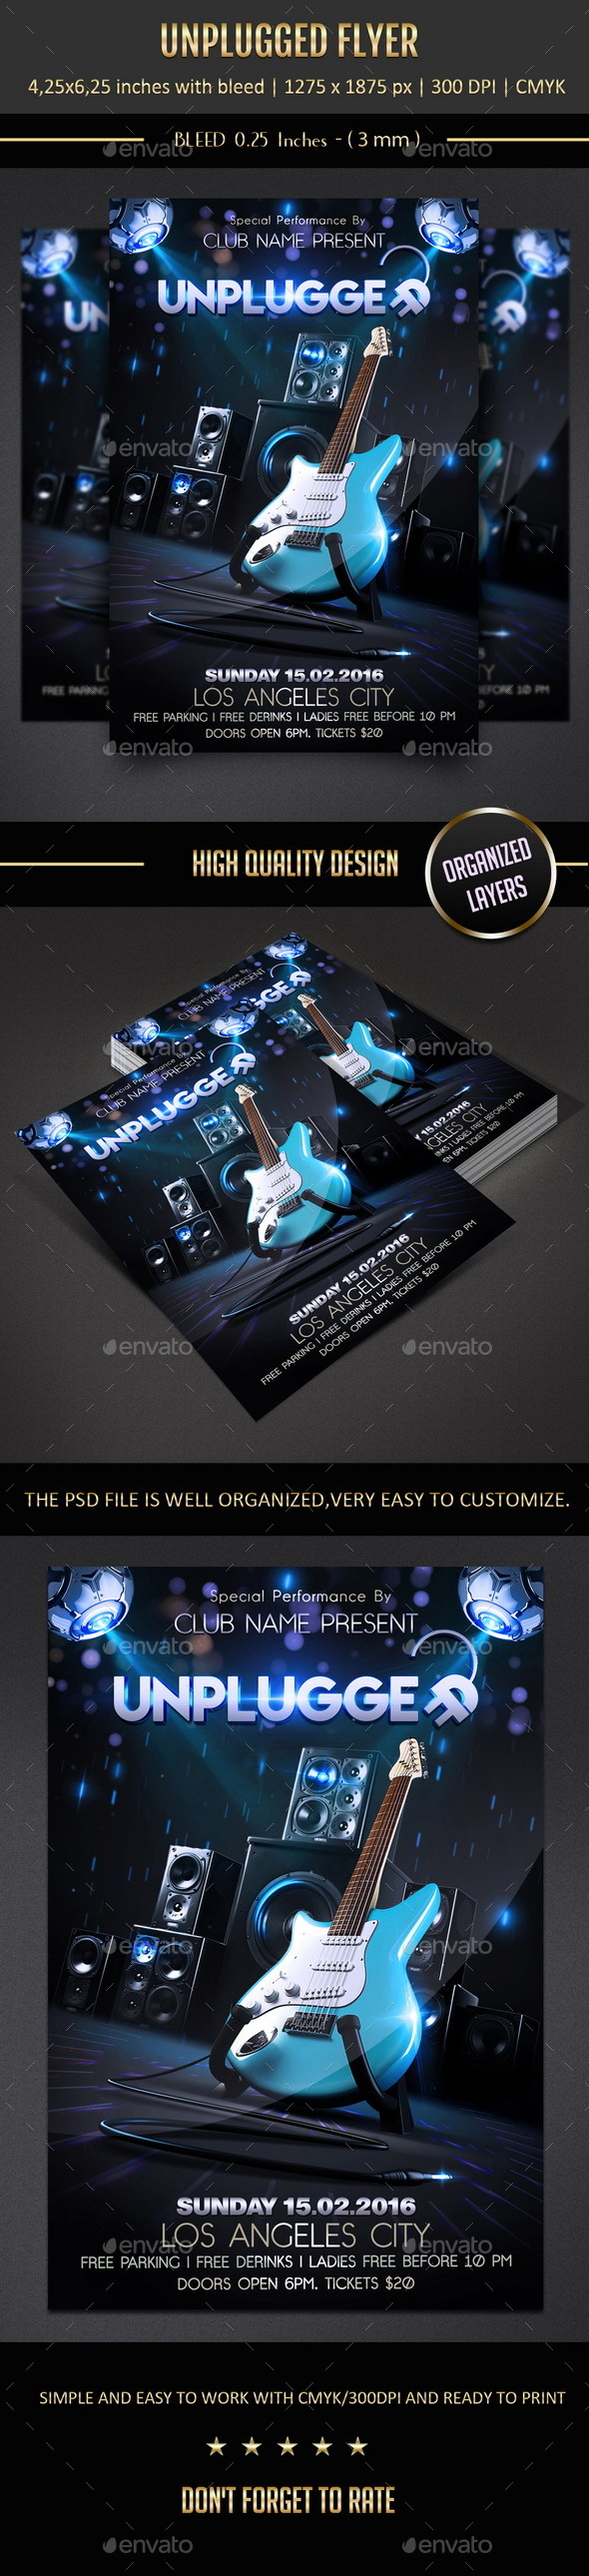 GraphicRiver Unplugged Flyer 10623384